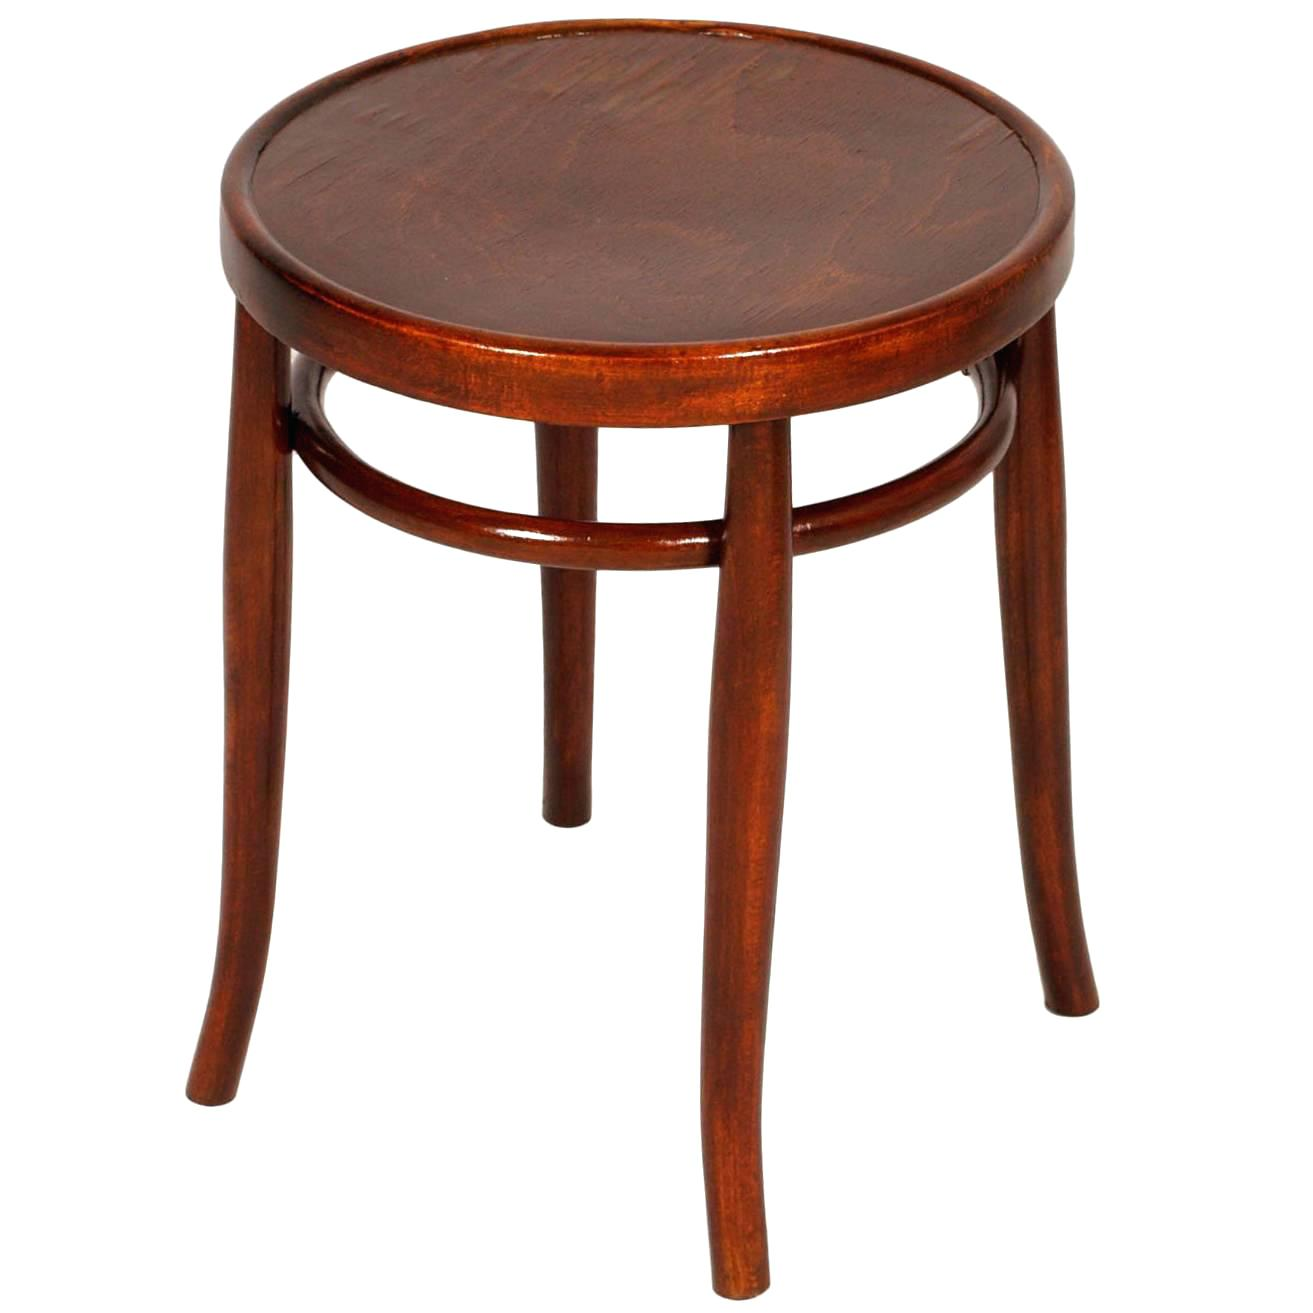 bentwood end table west elm daybed living room eclectic with early century round coffee polished wax for bent wood legs toddler and chairs monarch accent tempered glass small